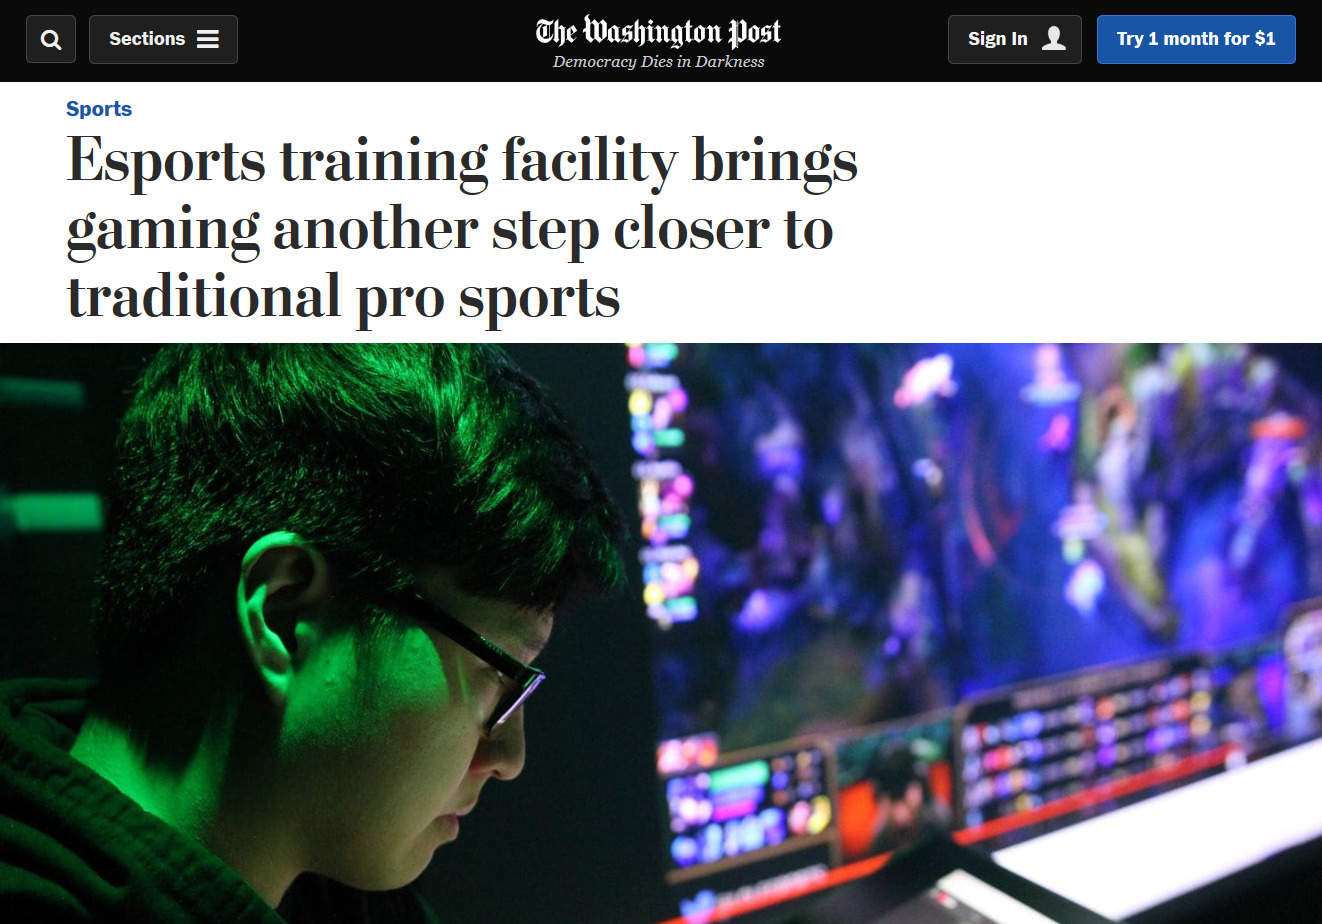 Washington Post Screen Shot.jpg